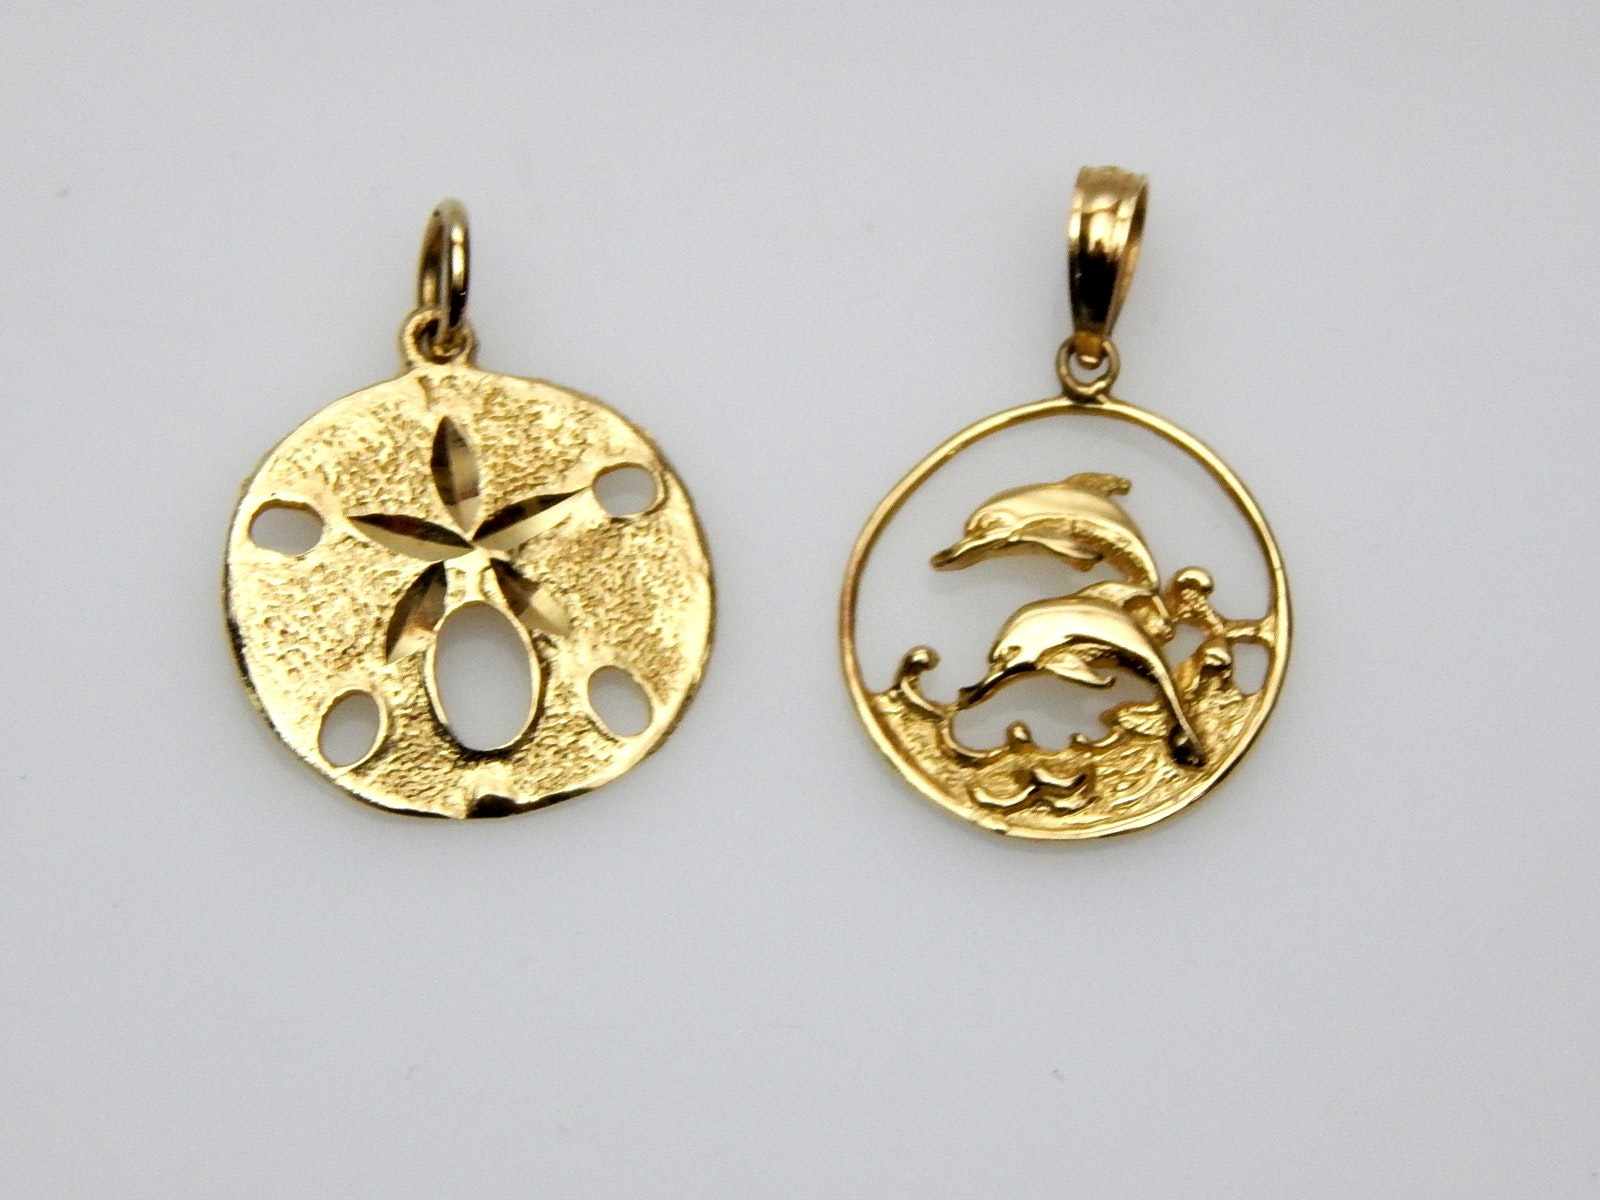 14K Yellow Gold Sand Dollar and Dolphin Pendants